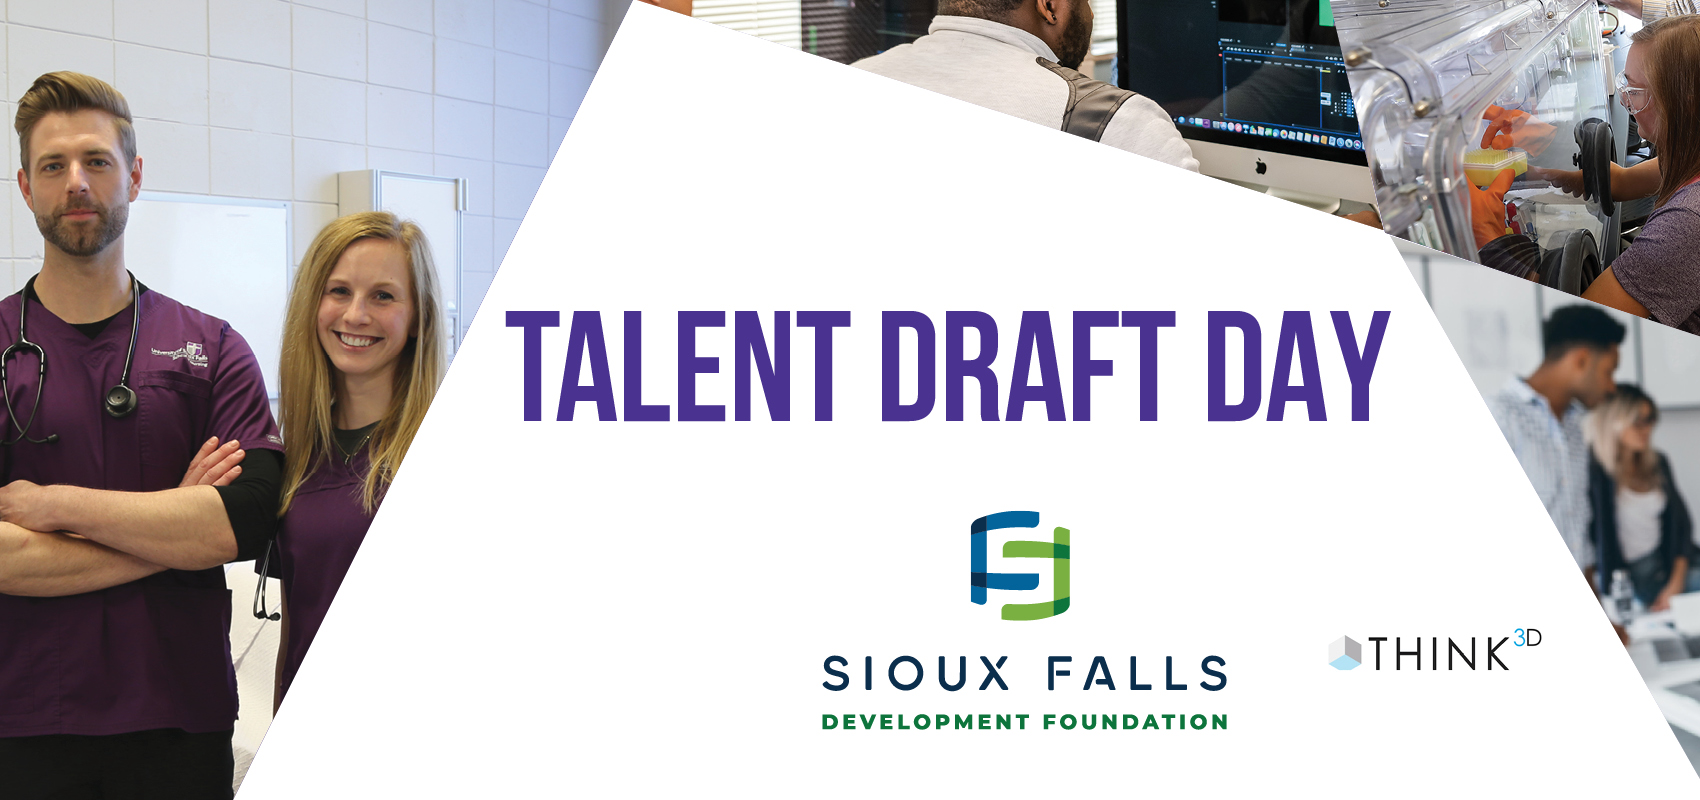 Talent Draft Day nursing students and science students